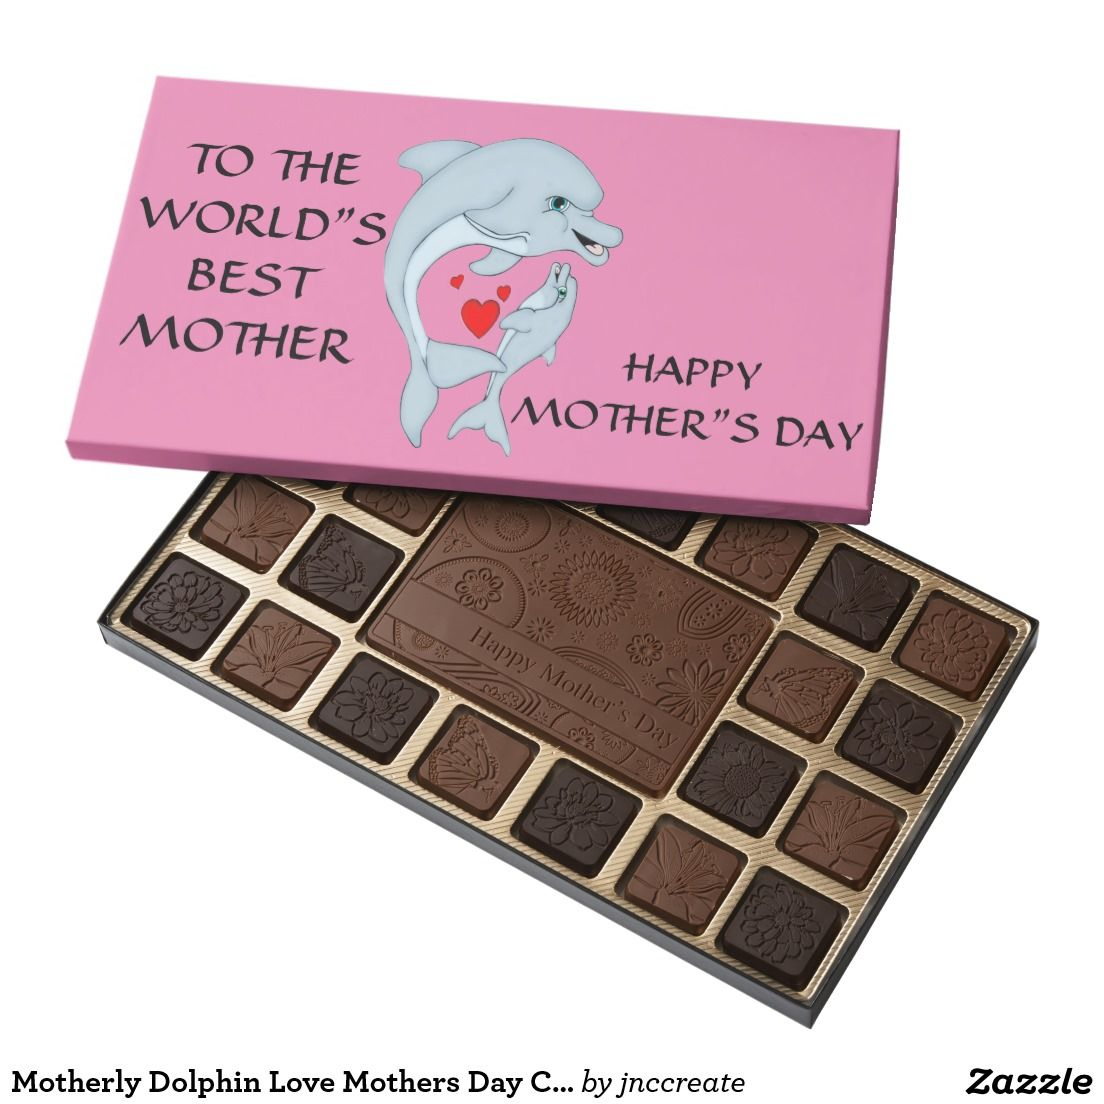 Motherly Dolphin Love Mothers Day Chocolates